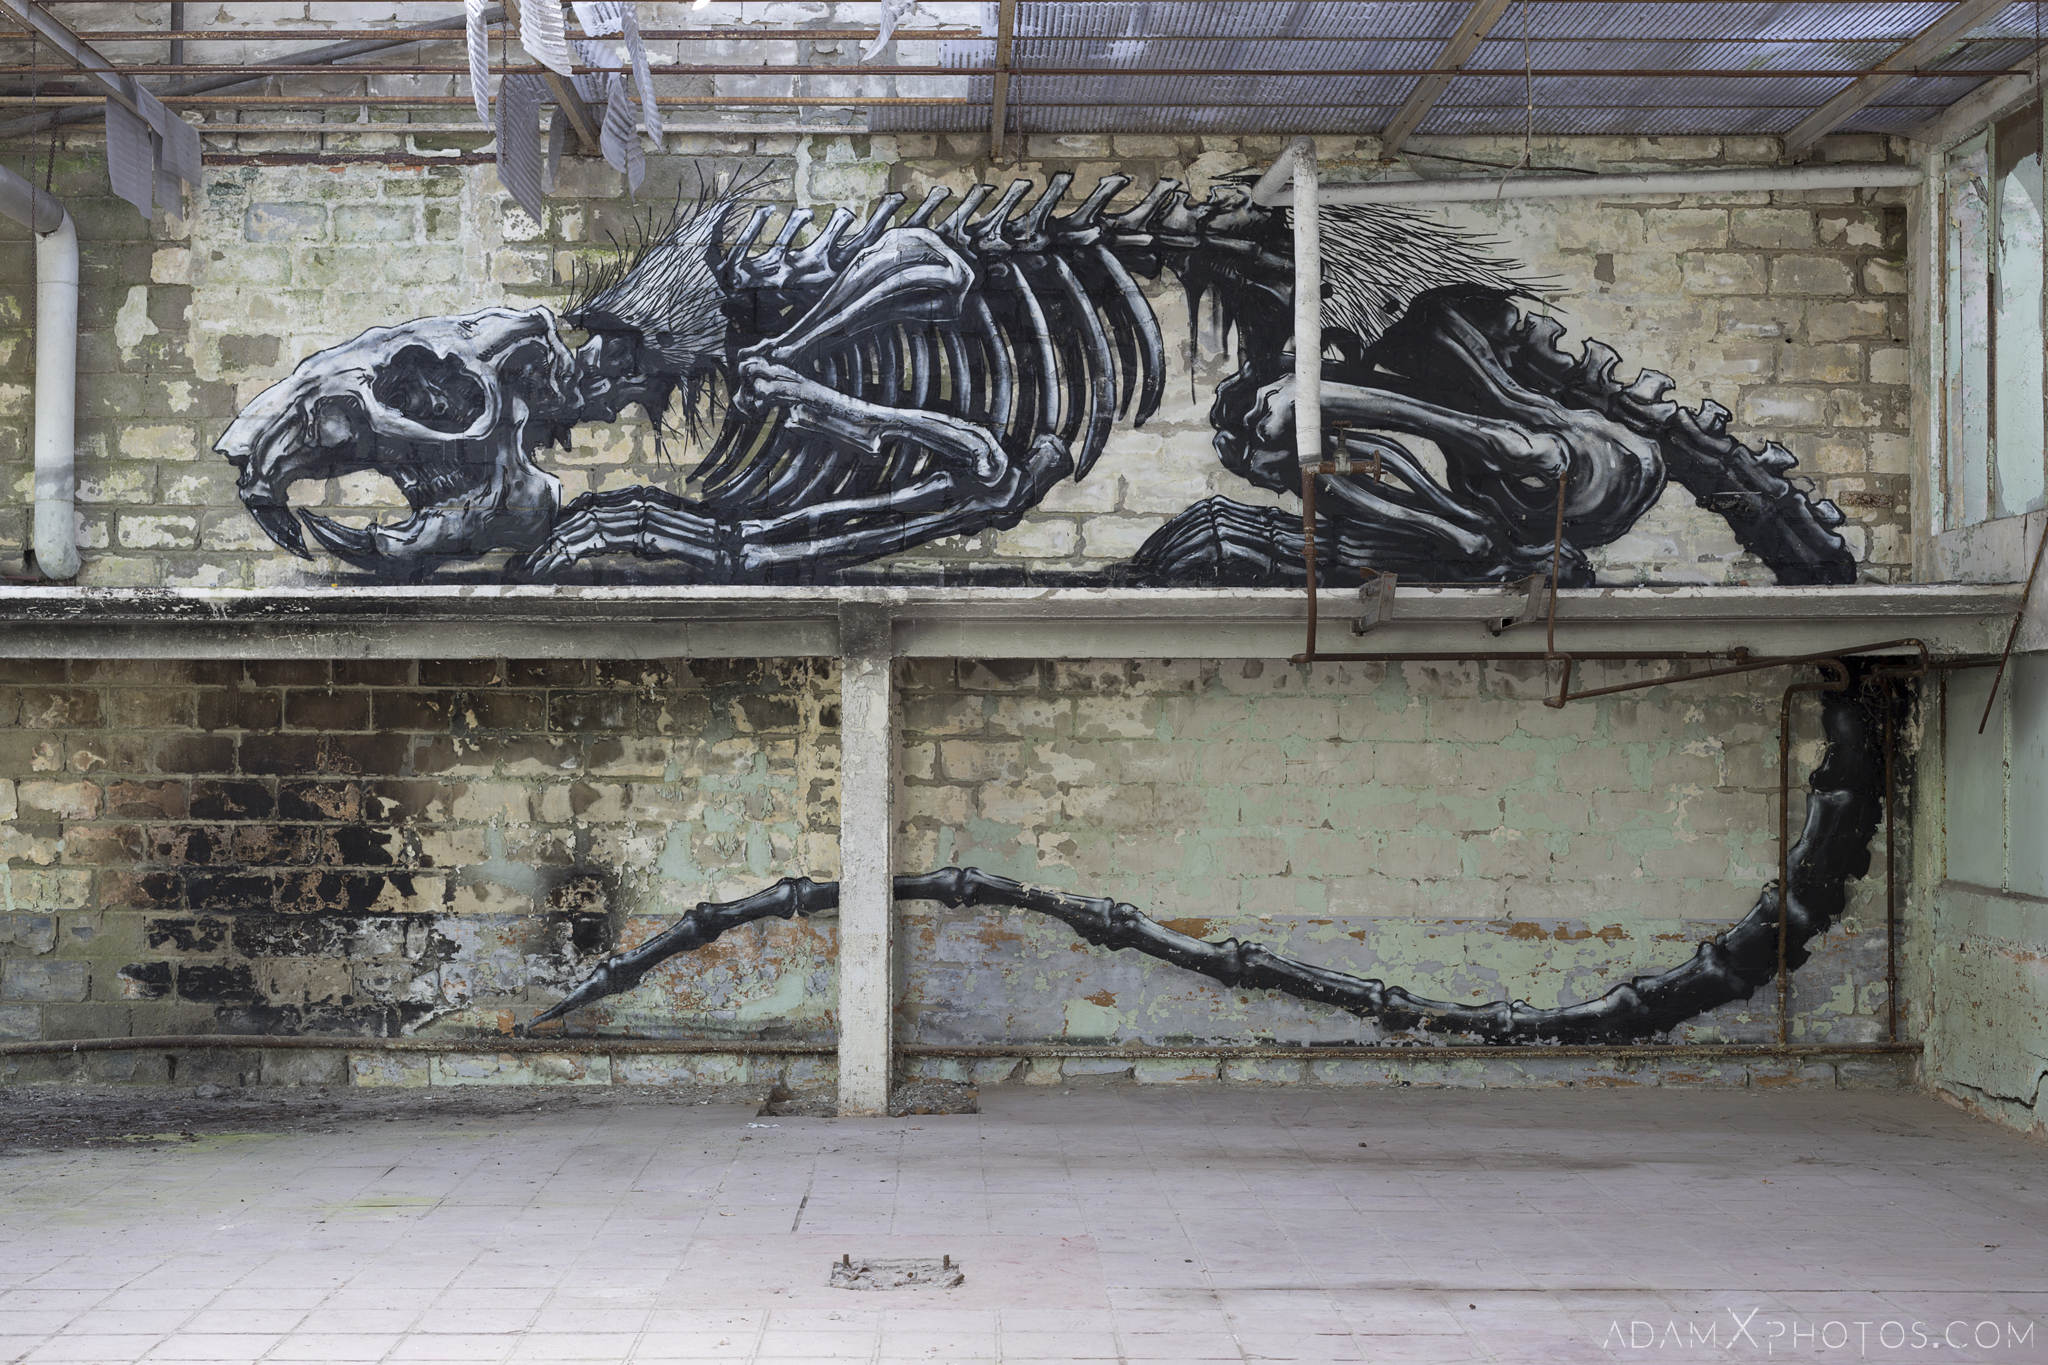 rat skeleton Overgrown squatters Usine Skeleton factory ROA Klaas Van der Linden Adam X Urbex Urban Exploration Belgium Access 2017 Abandoned decay lost forgotten derelict location creepy haunting eerie